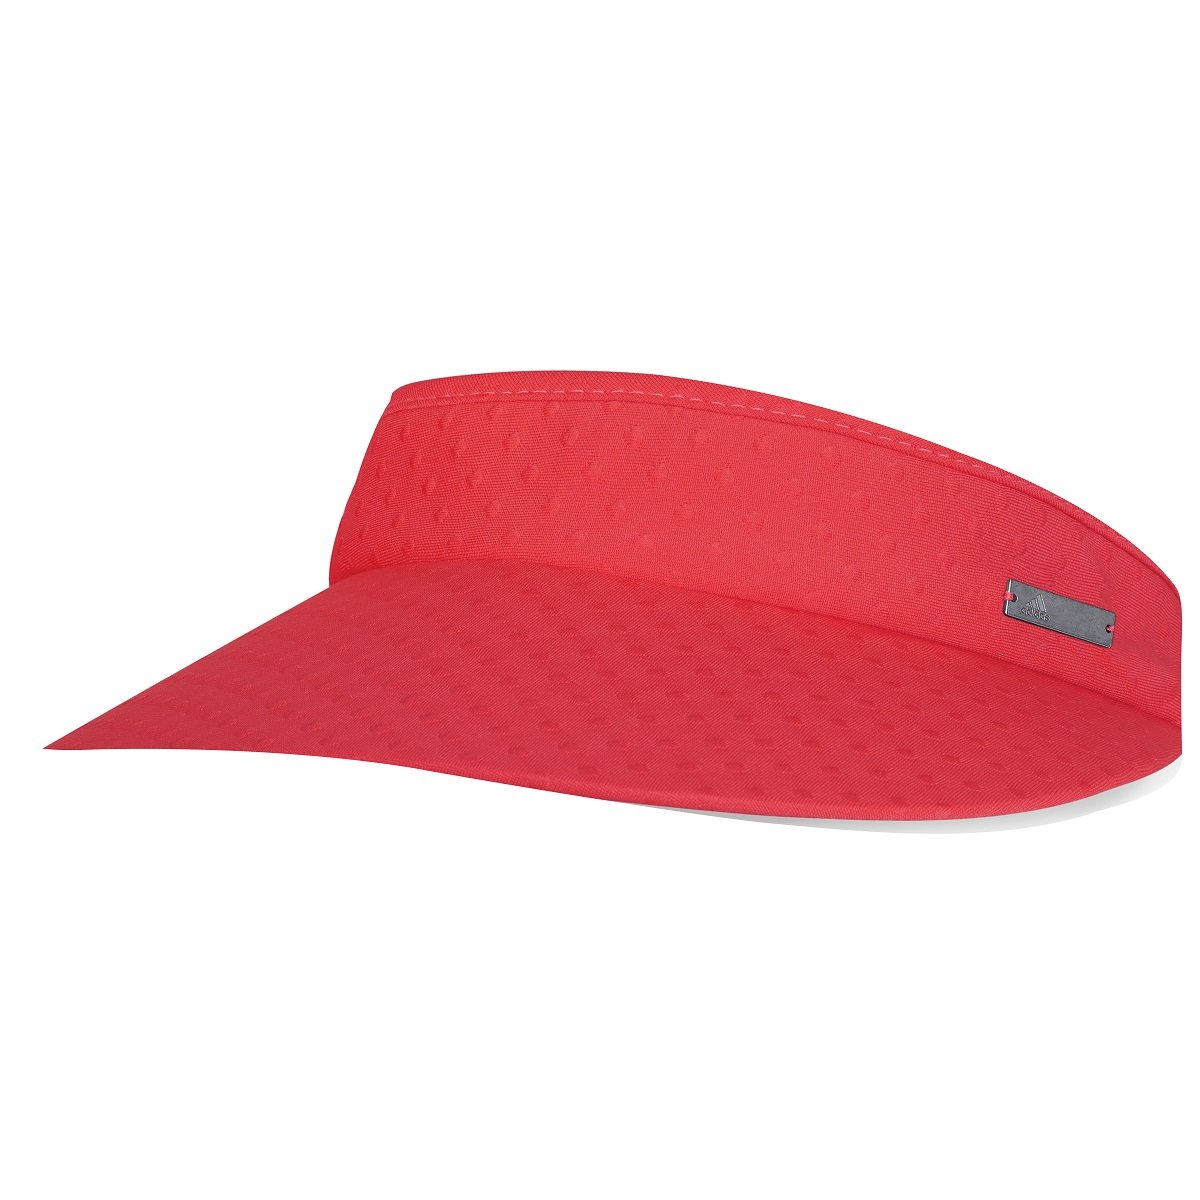 adidas Golf Adistar Swerve Women's Visor Shock Red